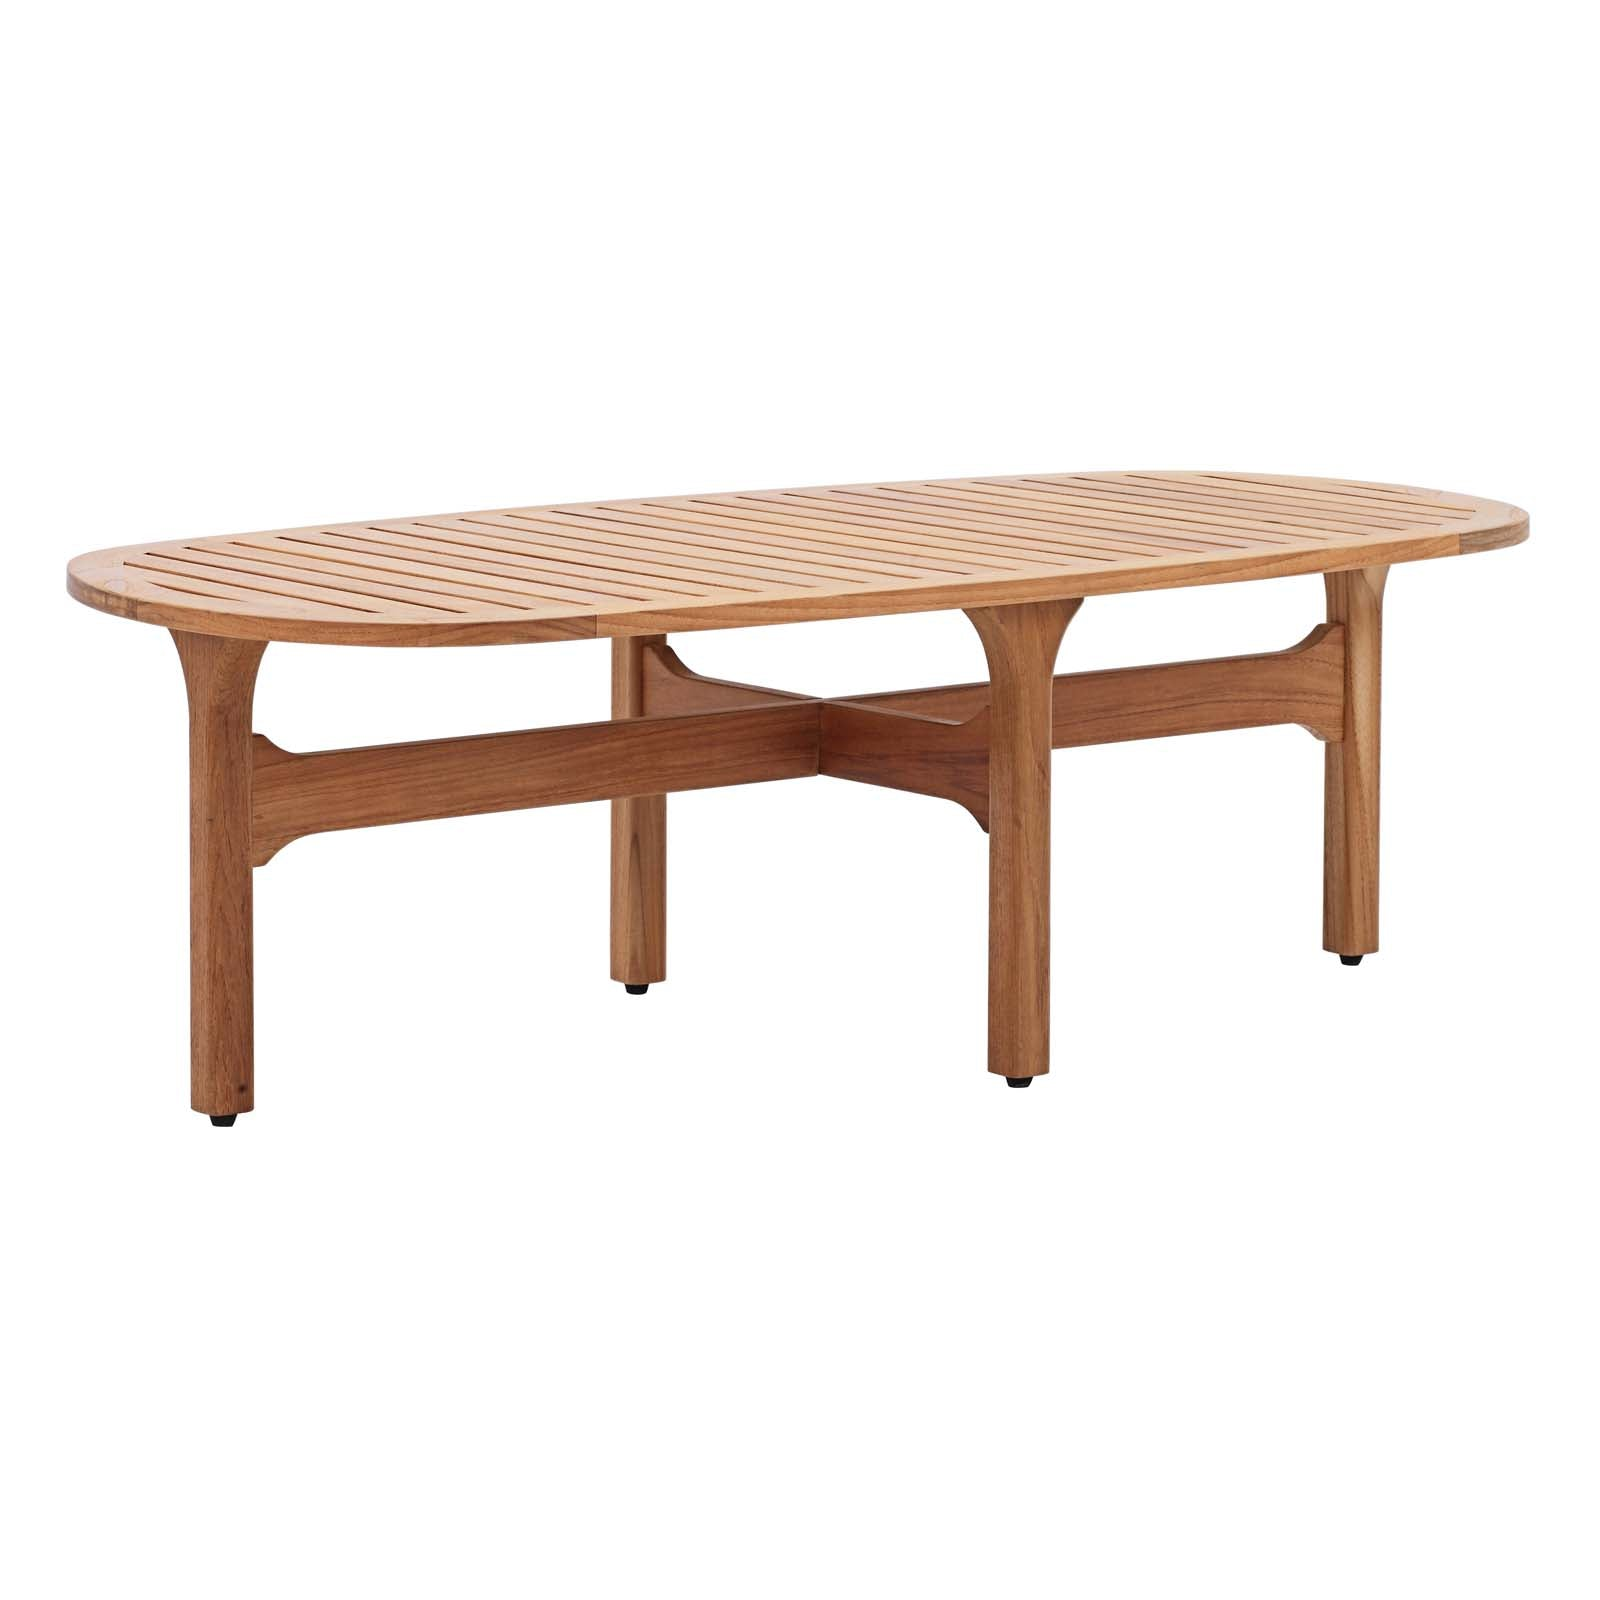 Modway Outdoor Coffee Tables On Sale. EEI-2930-NAT